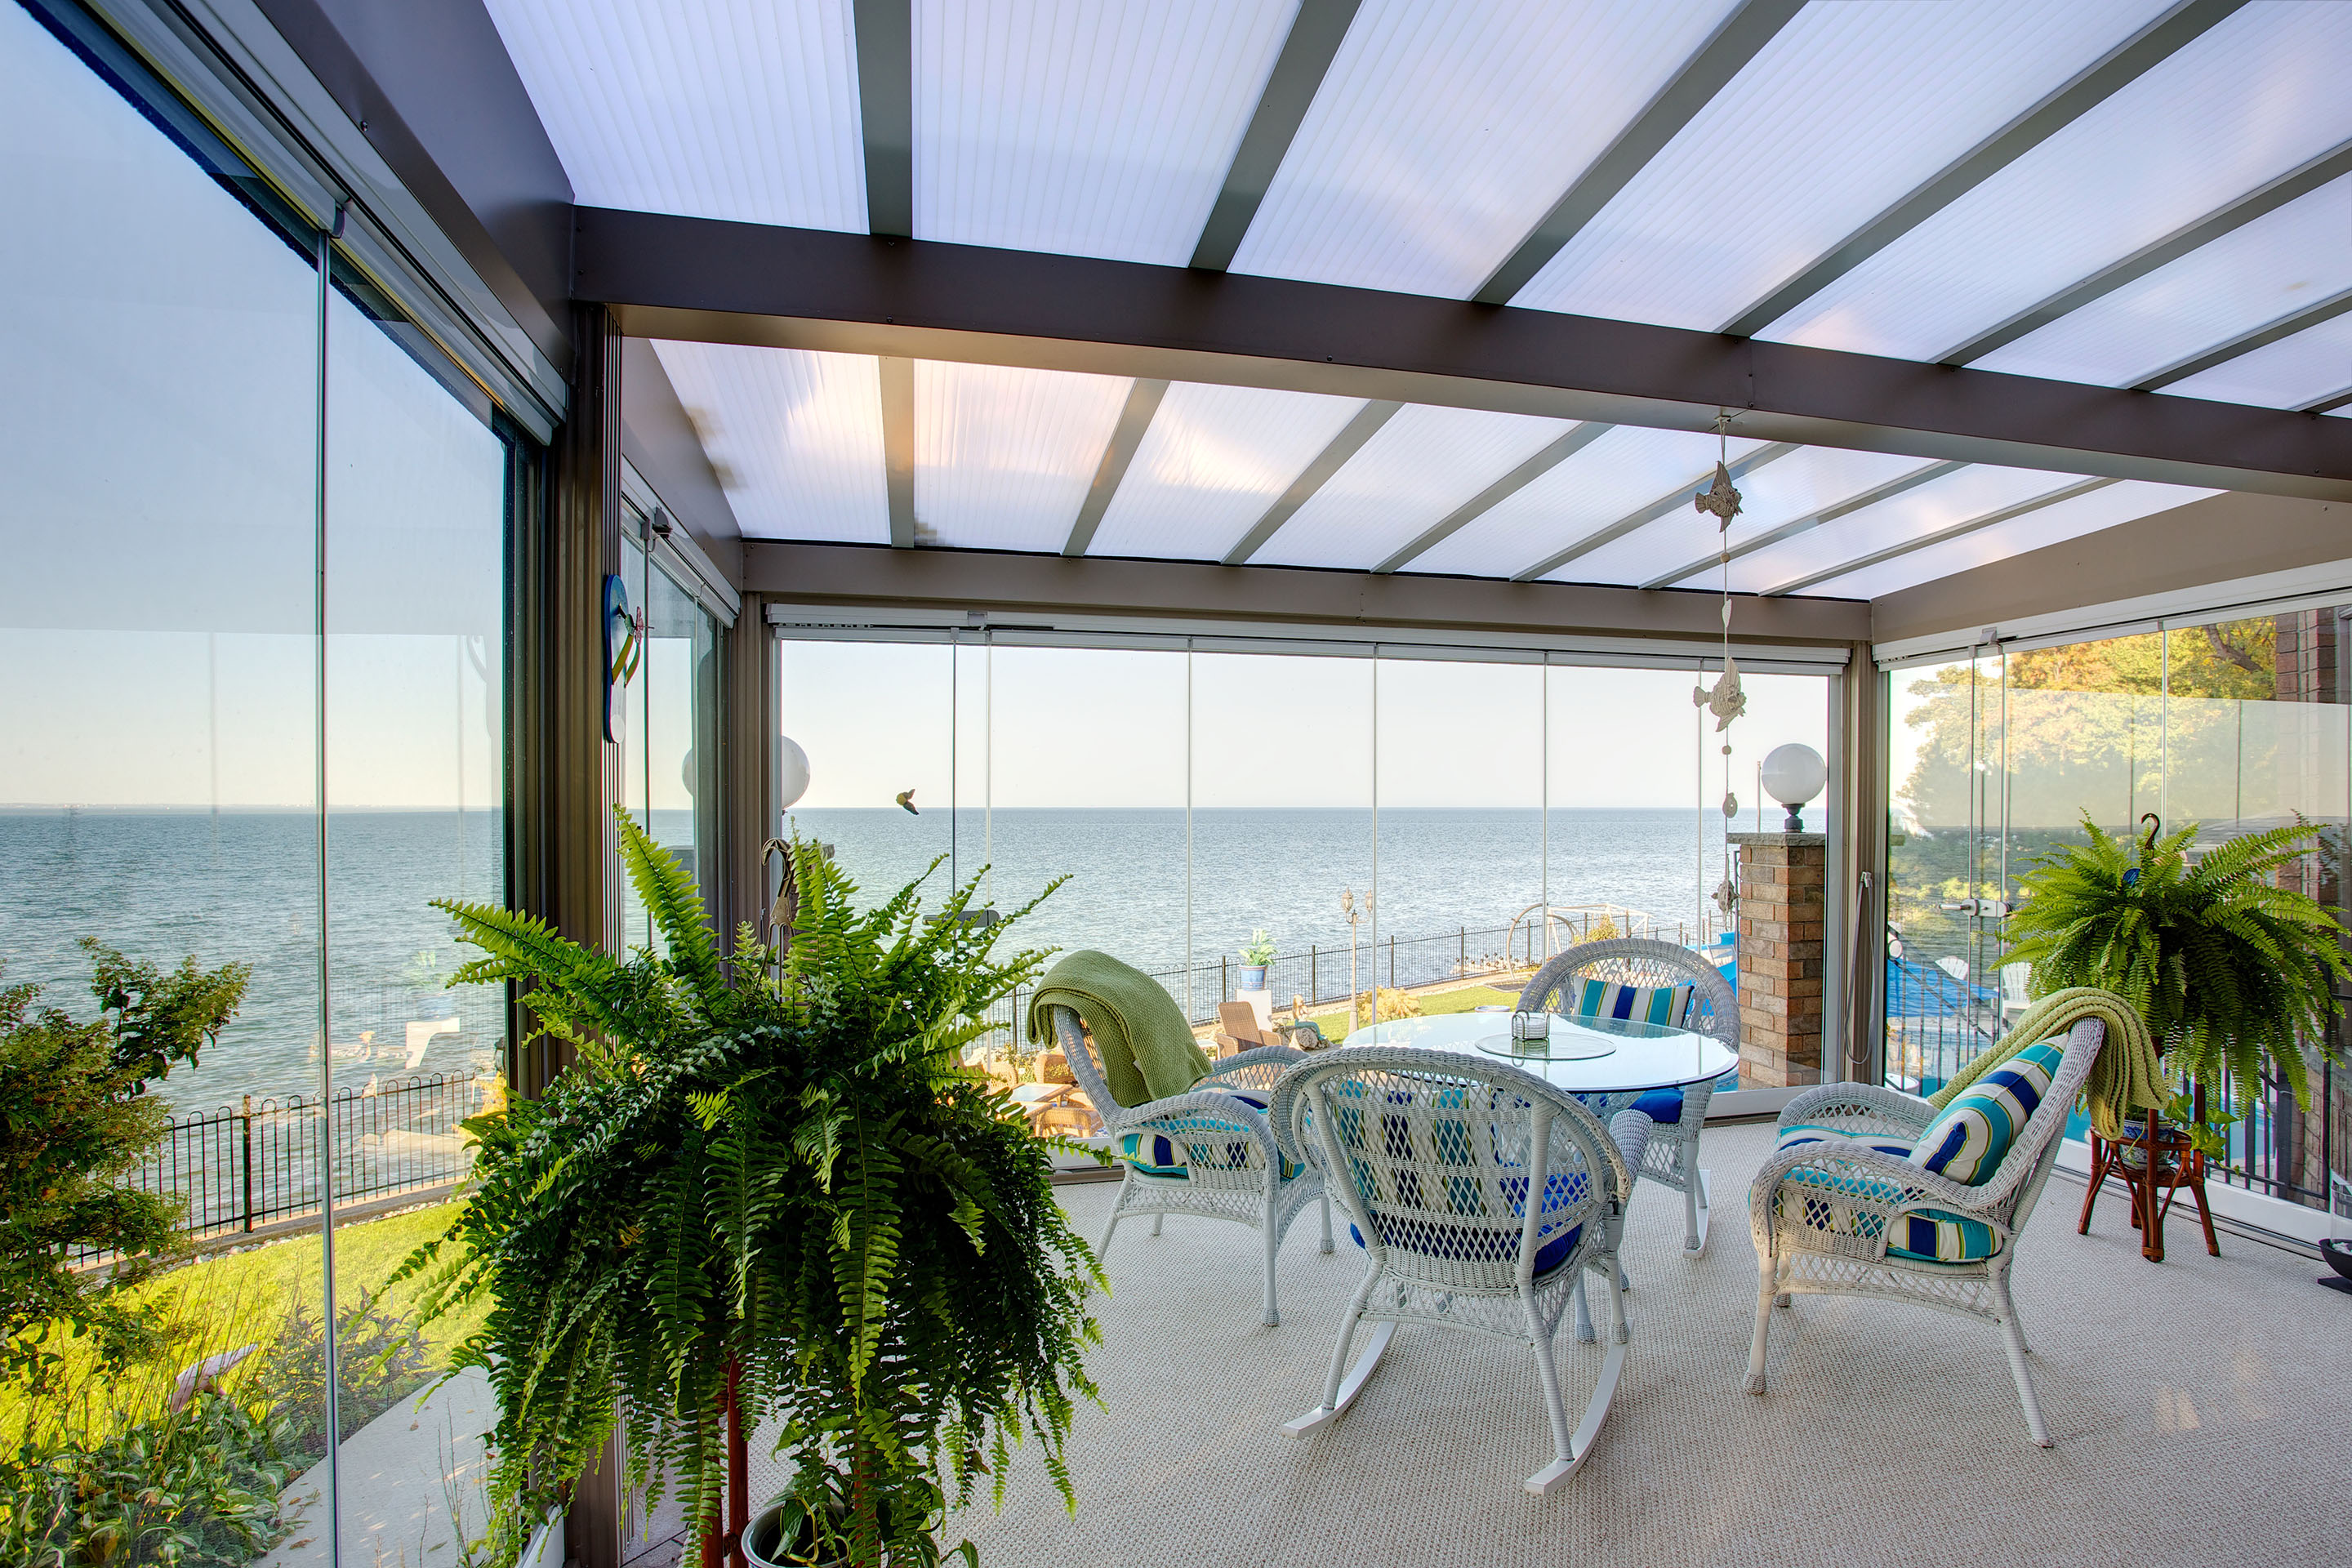 patio cover, natural light patio cover, natural light patio covers, aluminum patio cover, acrylic patio cover, patio awning, aluminum patio awning, patio awnings, awning, sun deck, sundeck, covered deck